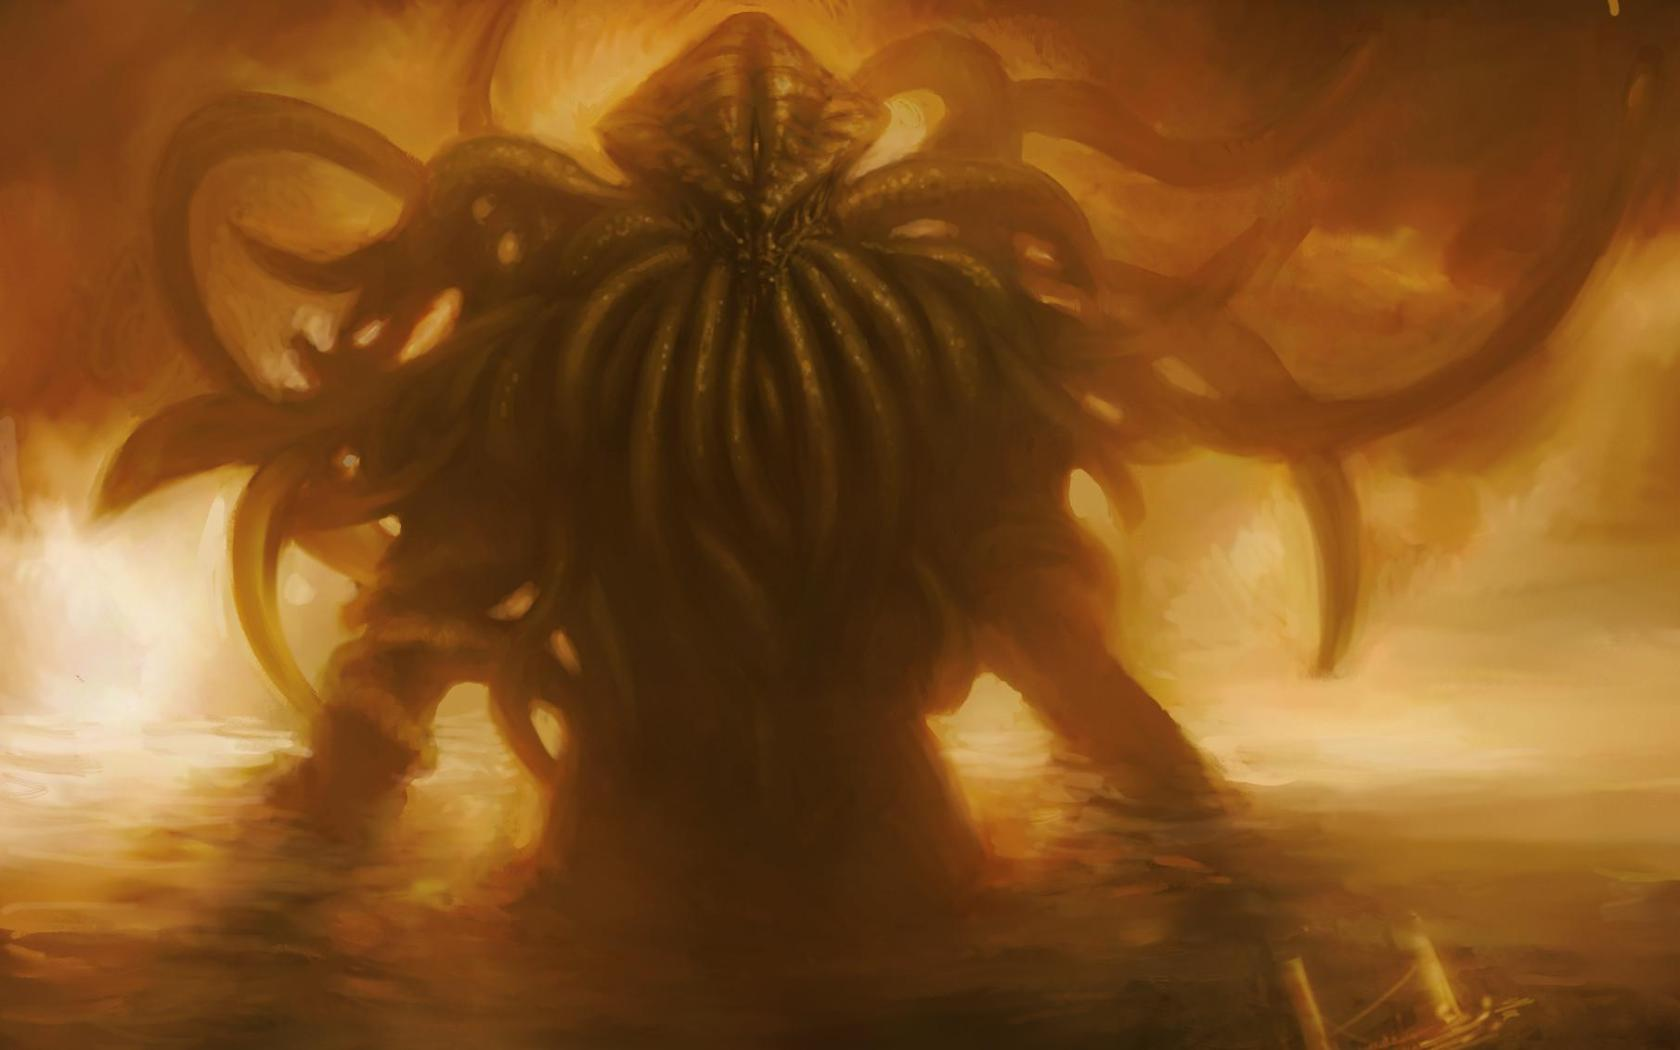 Download Wallpaper cthulhu fantasy art -3294-32